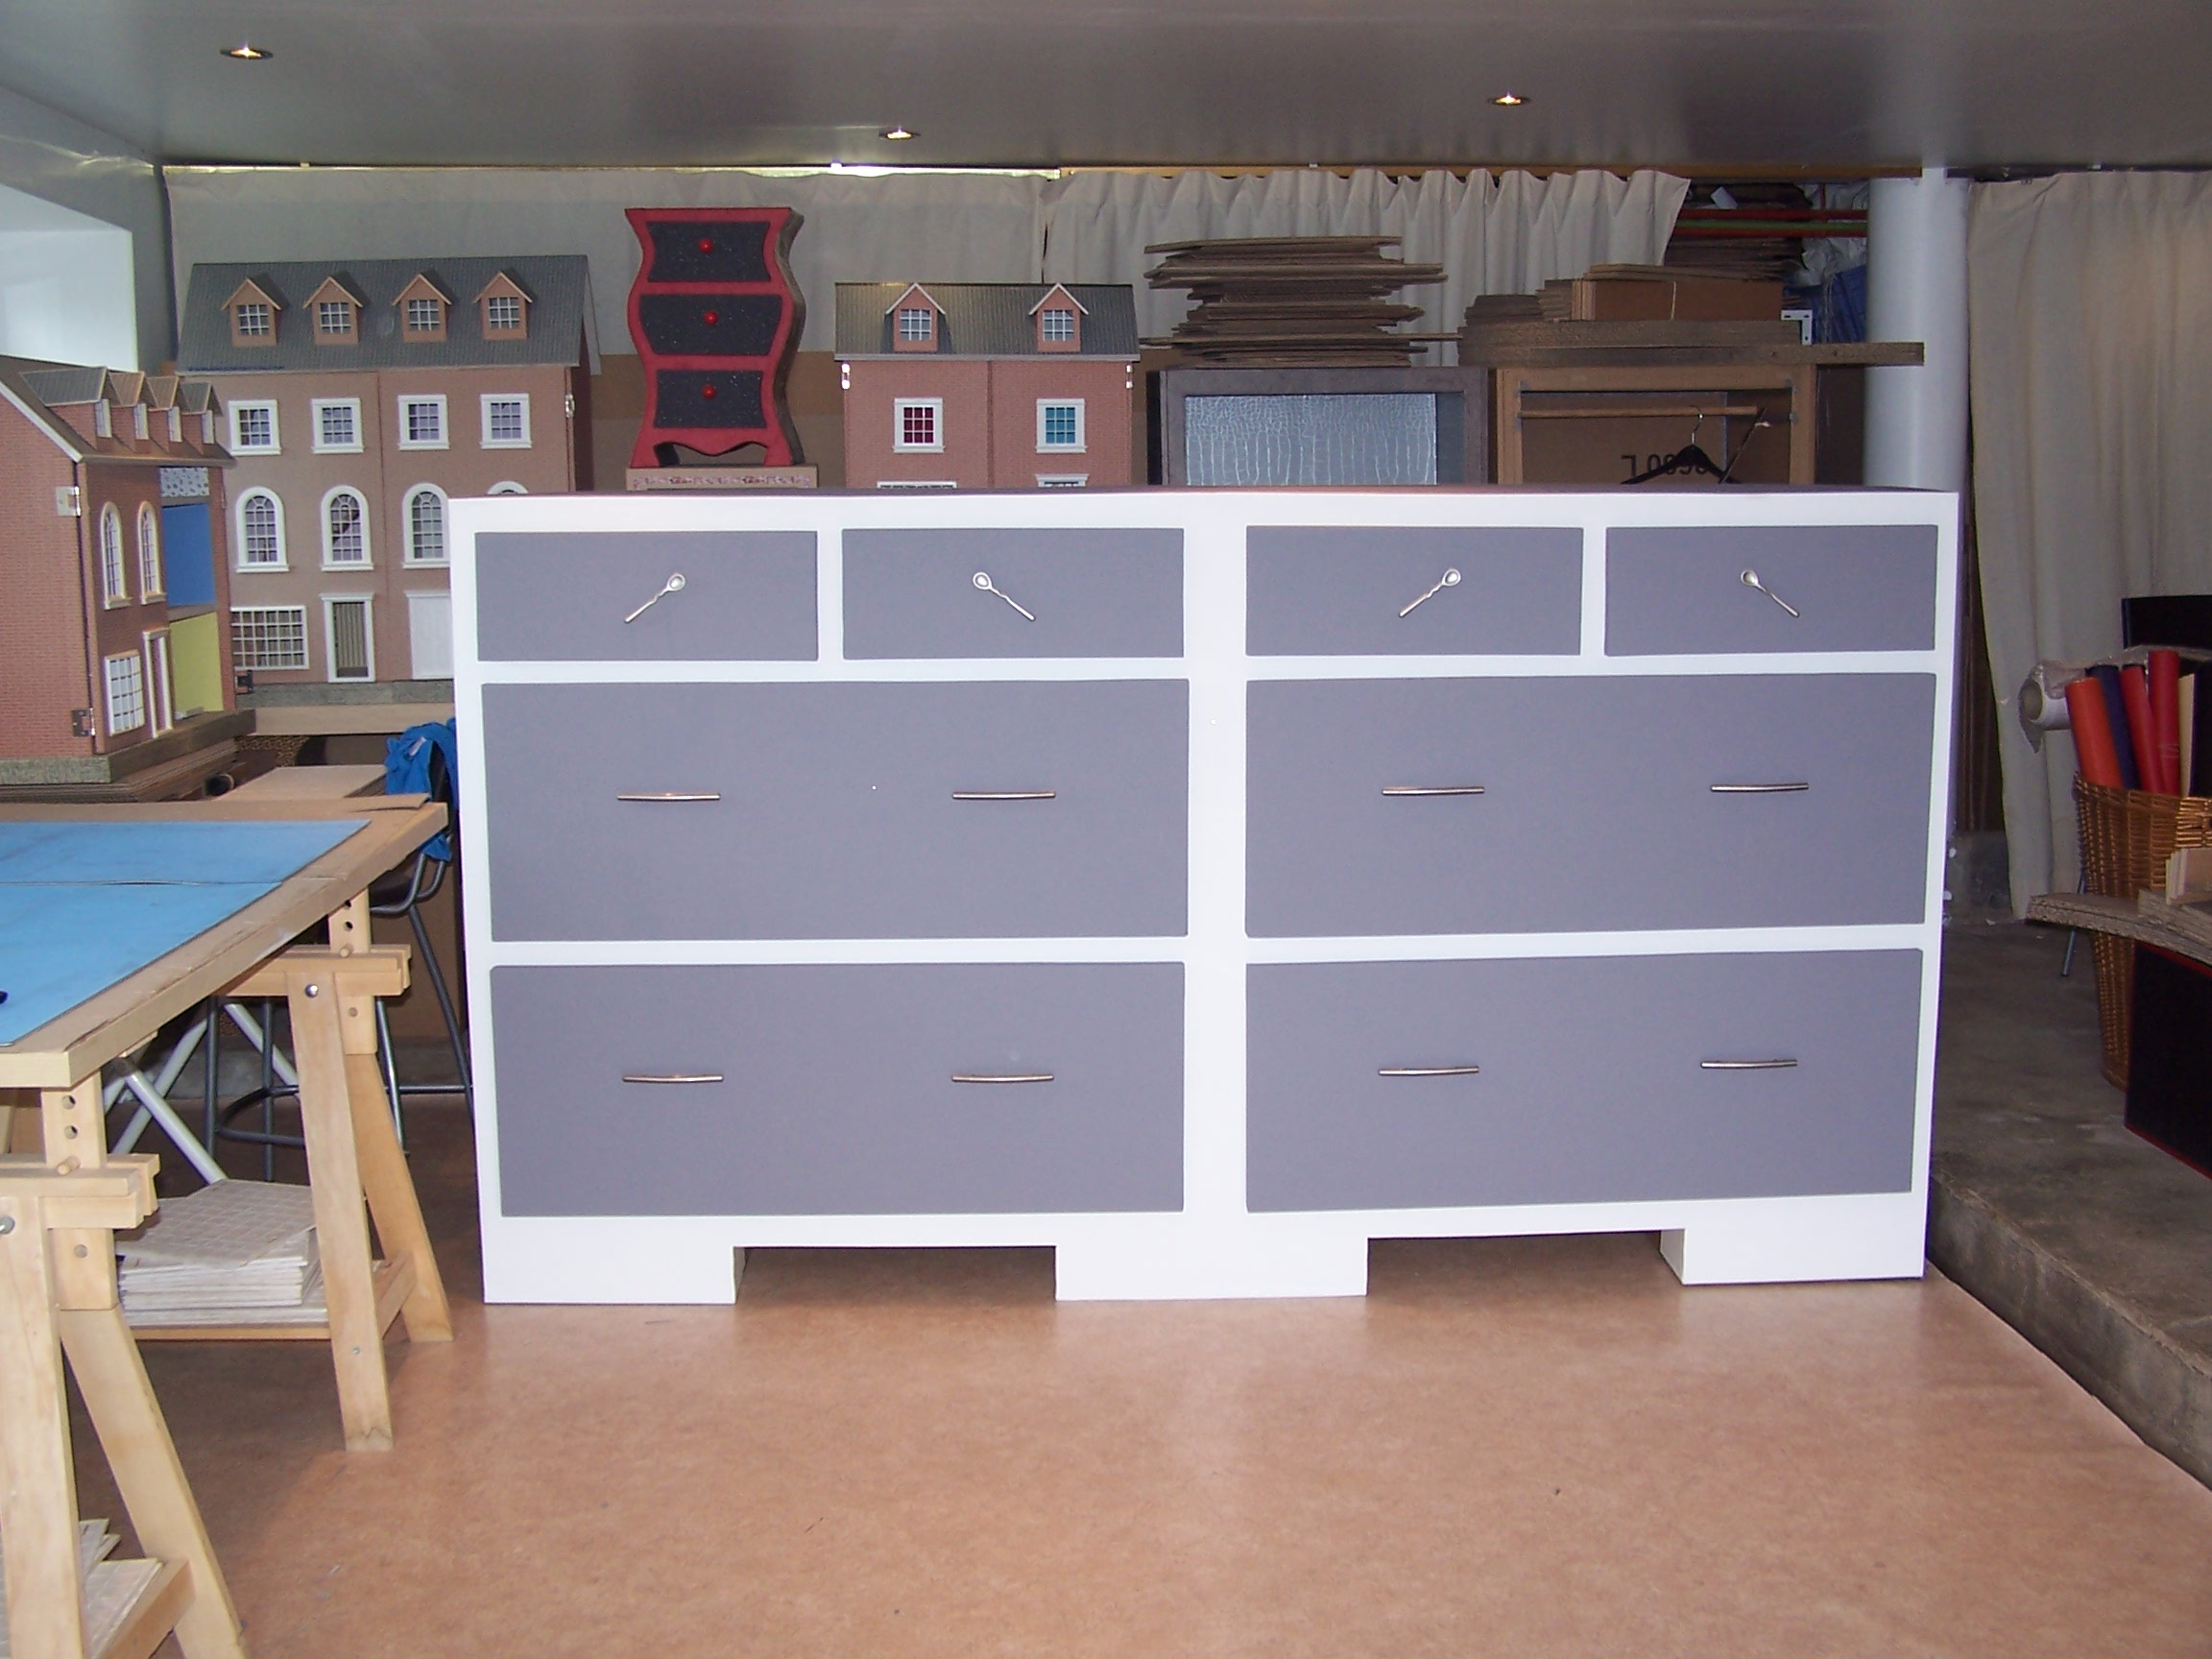 construisez vous m me votre meuble en carton. Black Bedroom Furniture Sets. Home Design Ideas